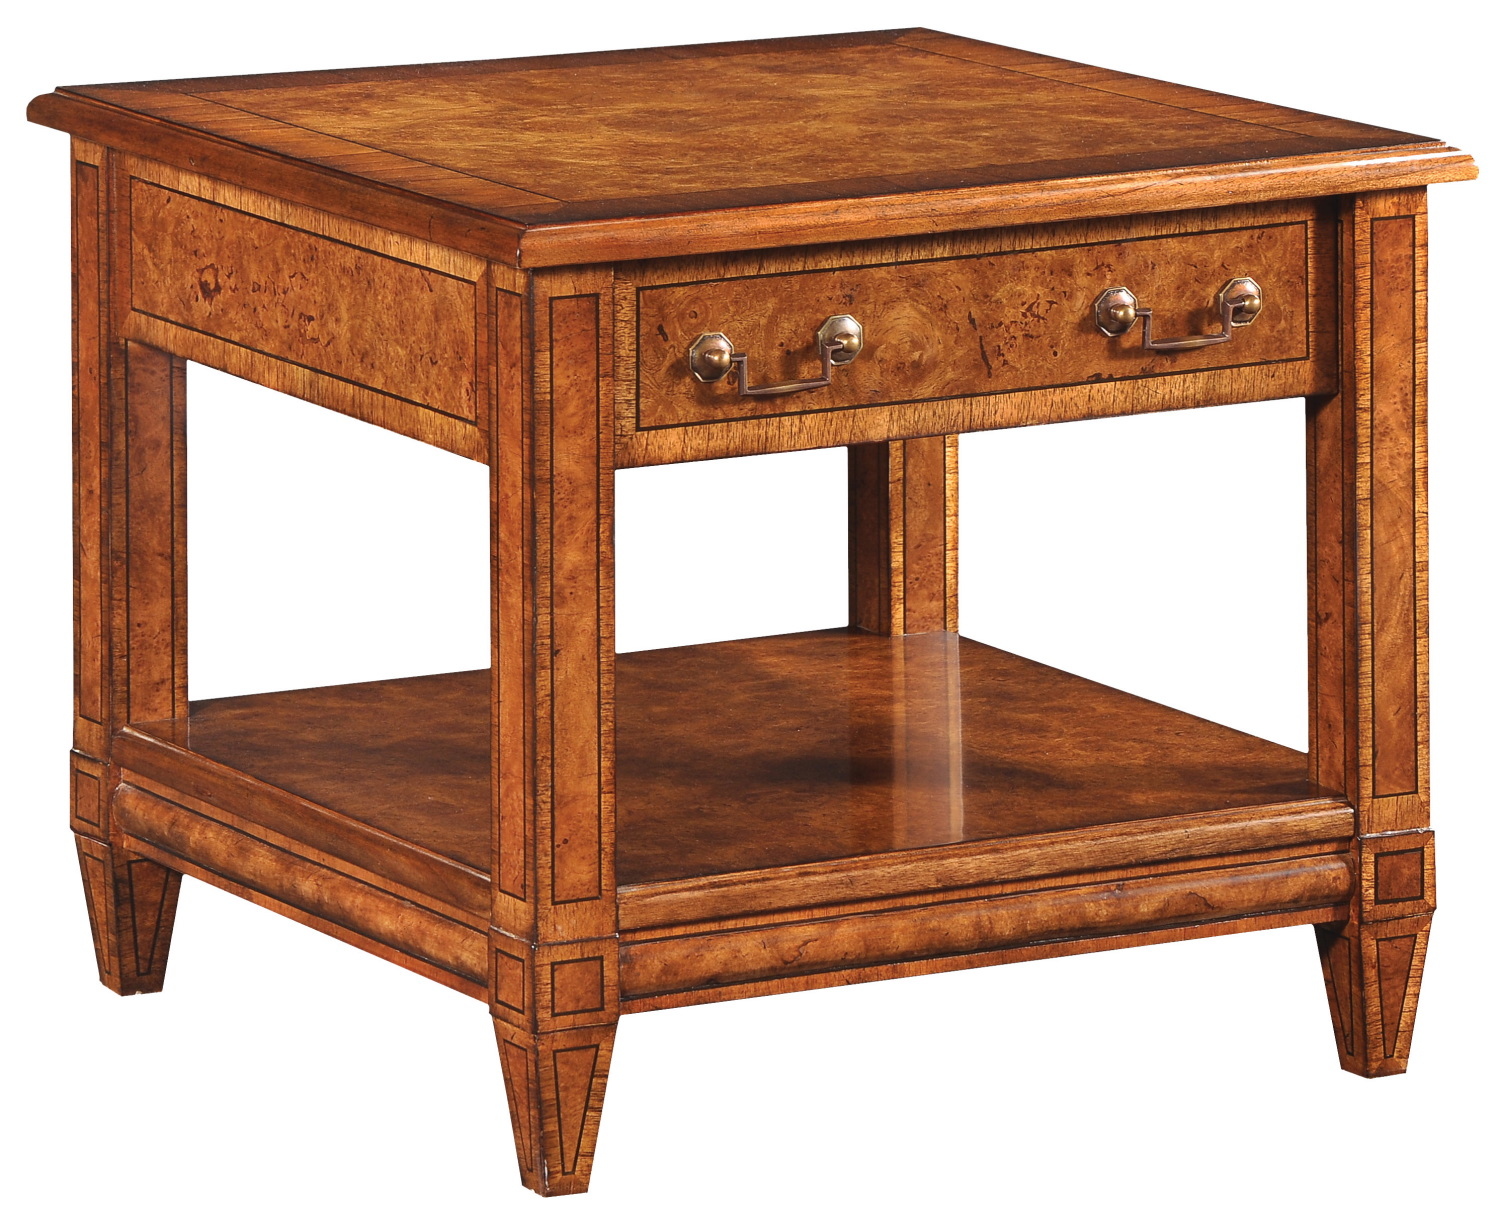 Dorchester lamp table with drawer